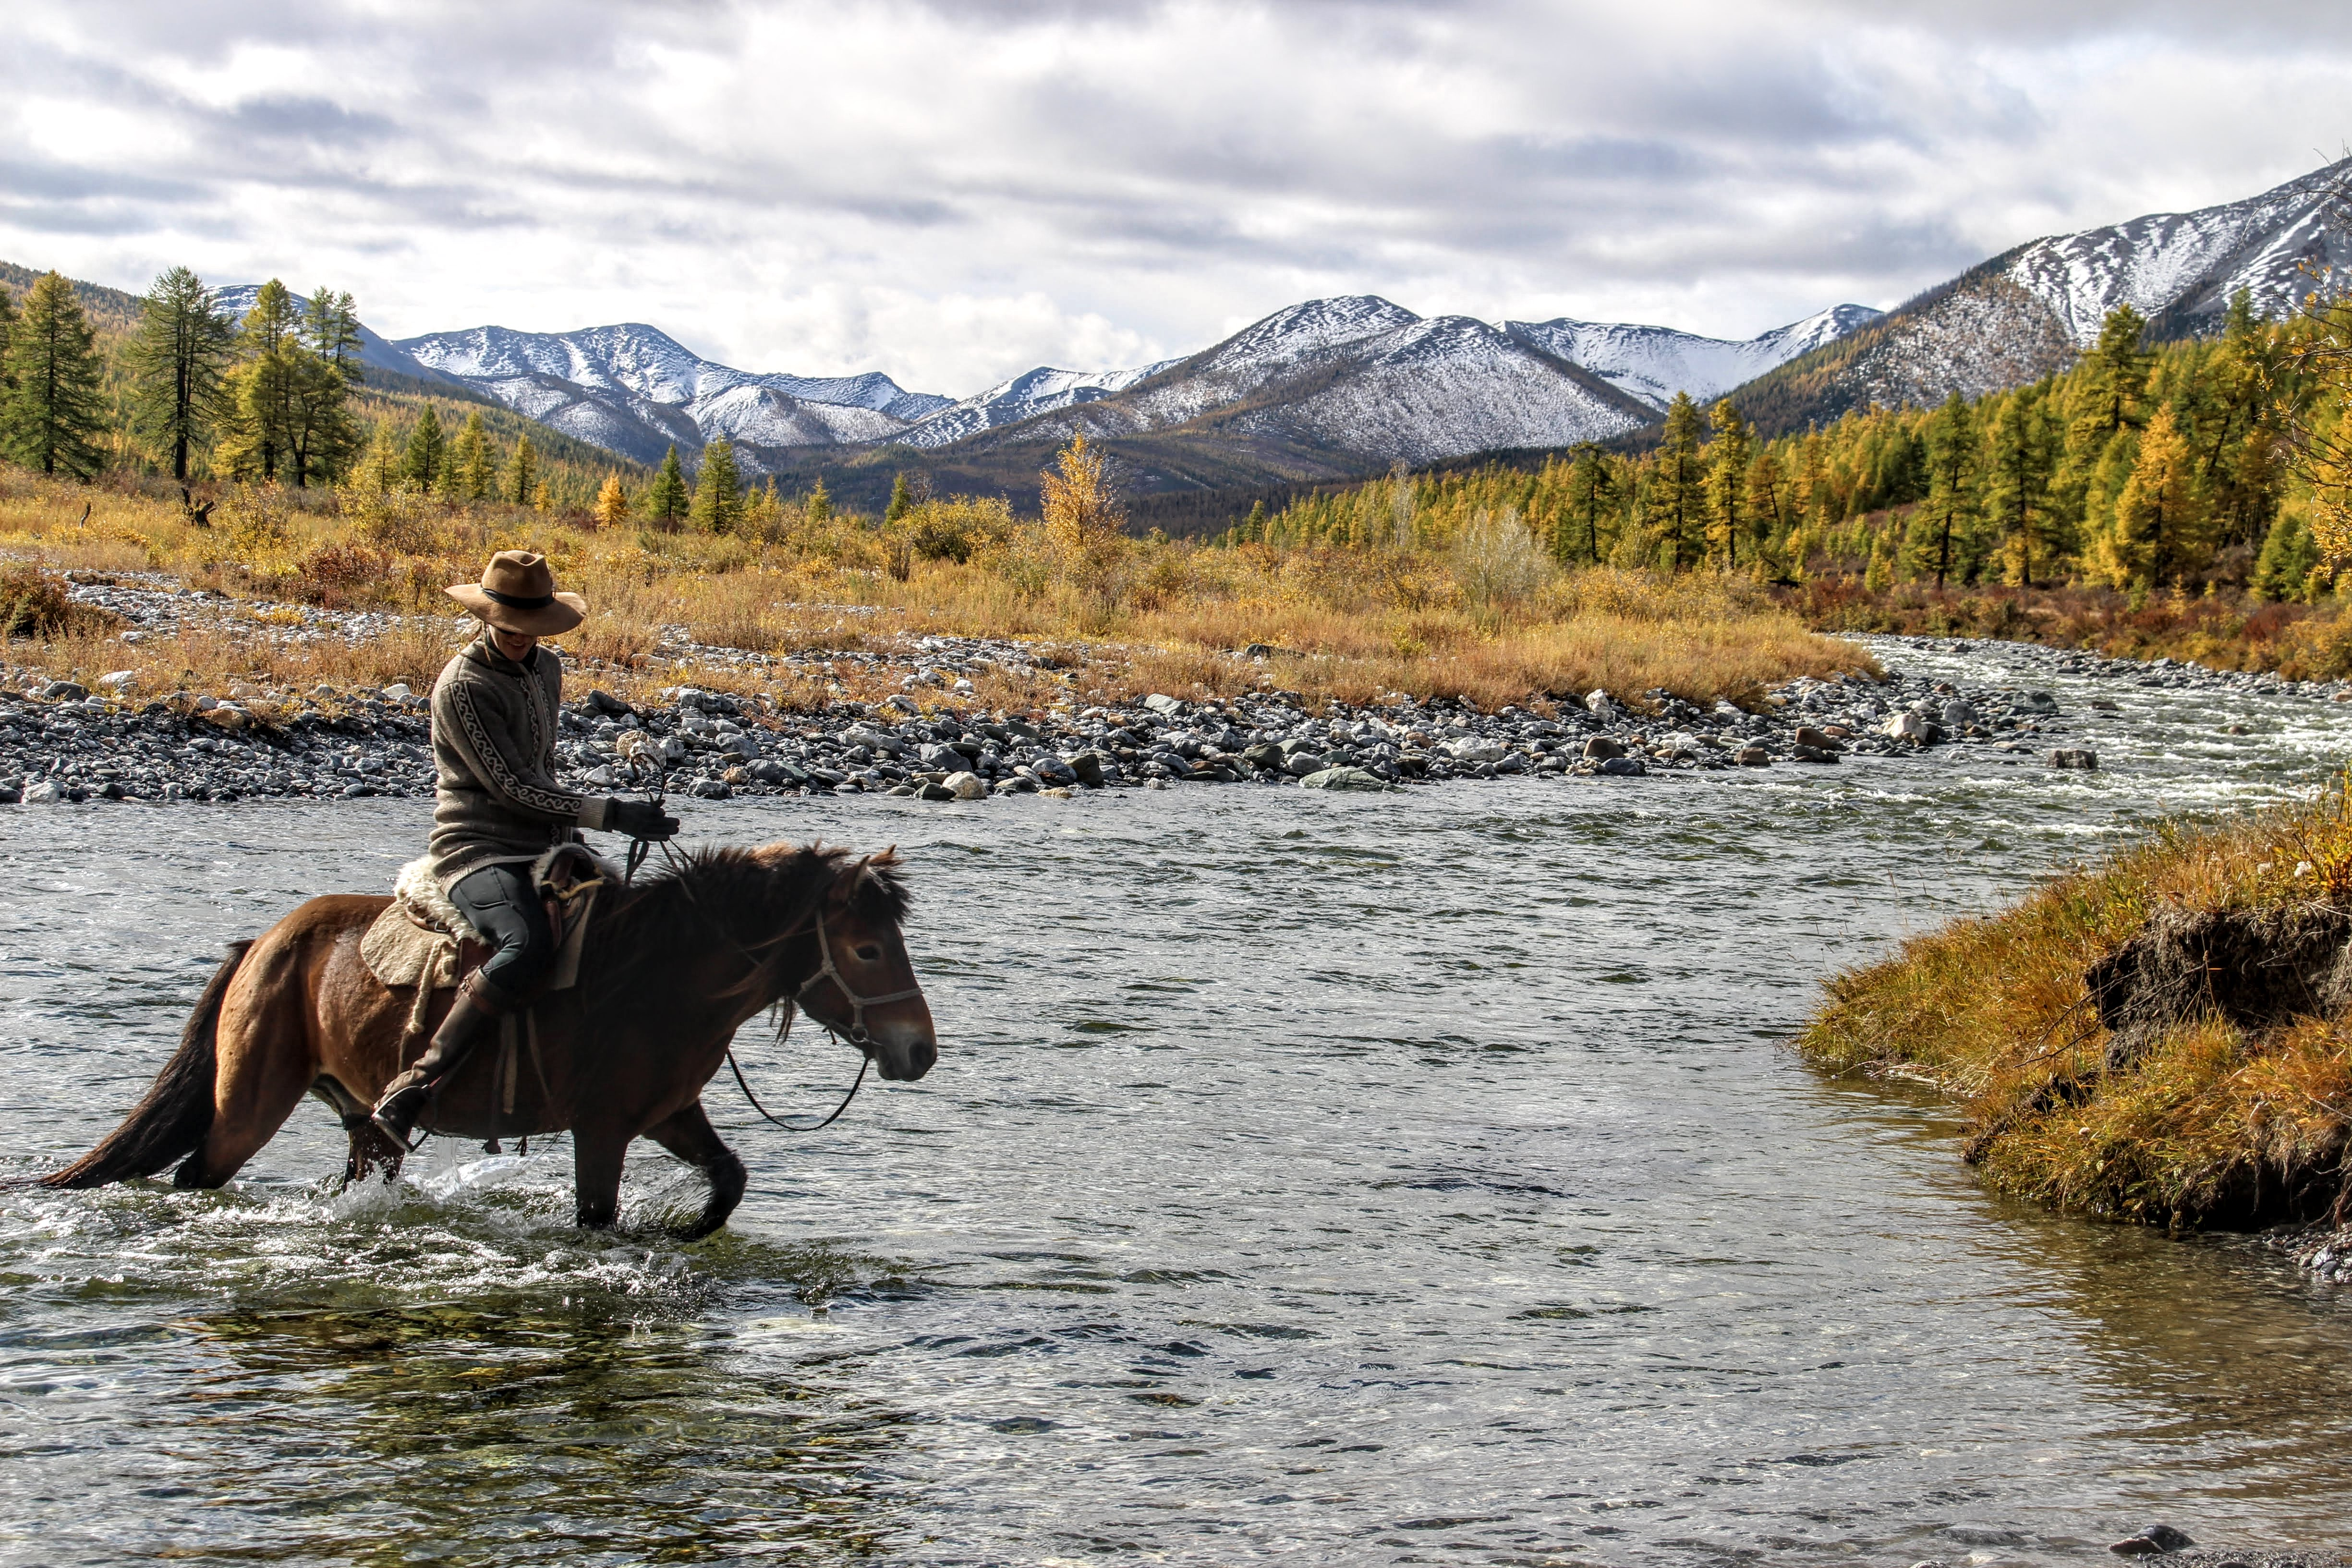 Rider and horse crossing river in Northern Mongolia with snowy mountains in background